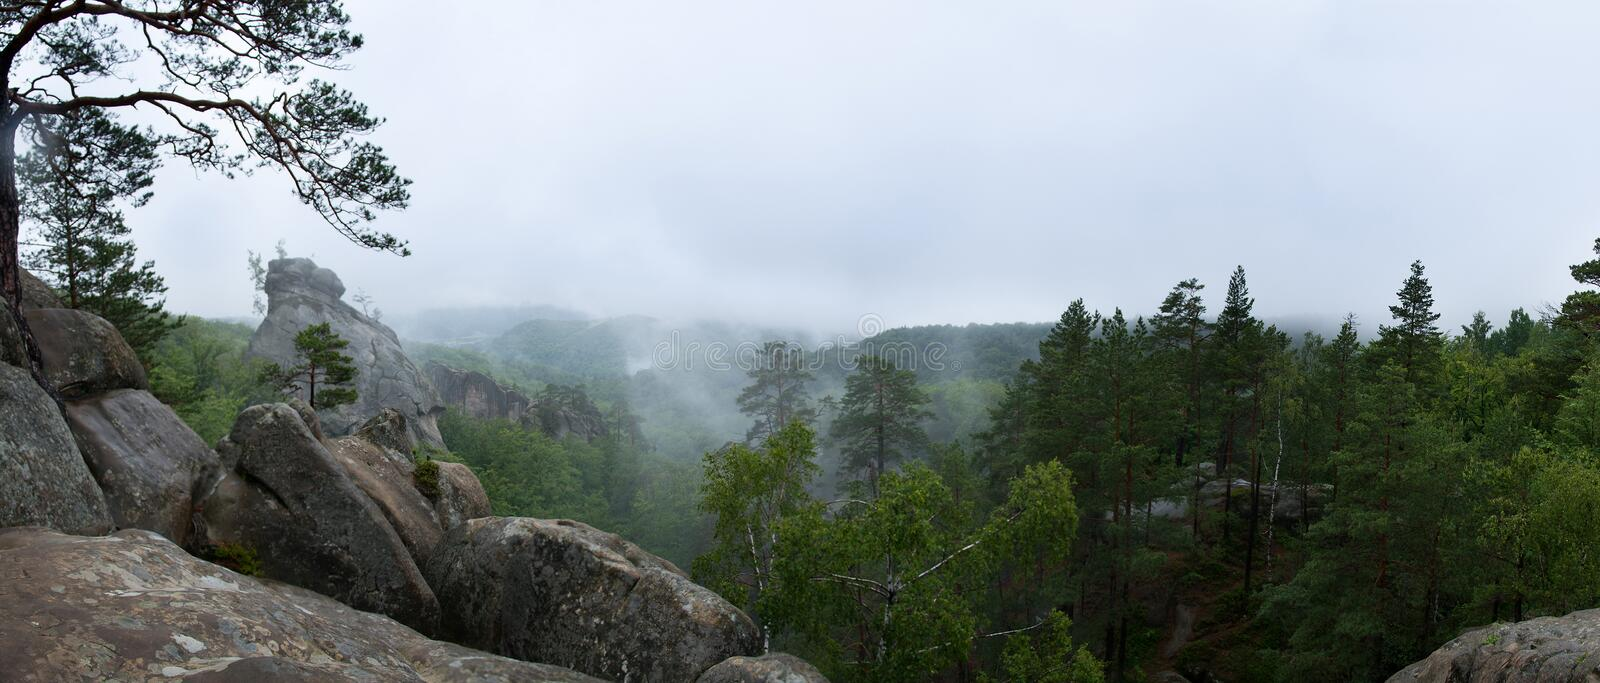 Wilderness forest in fog and rain, panoramic view stock images